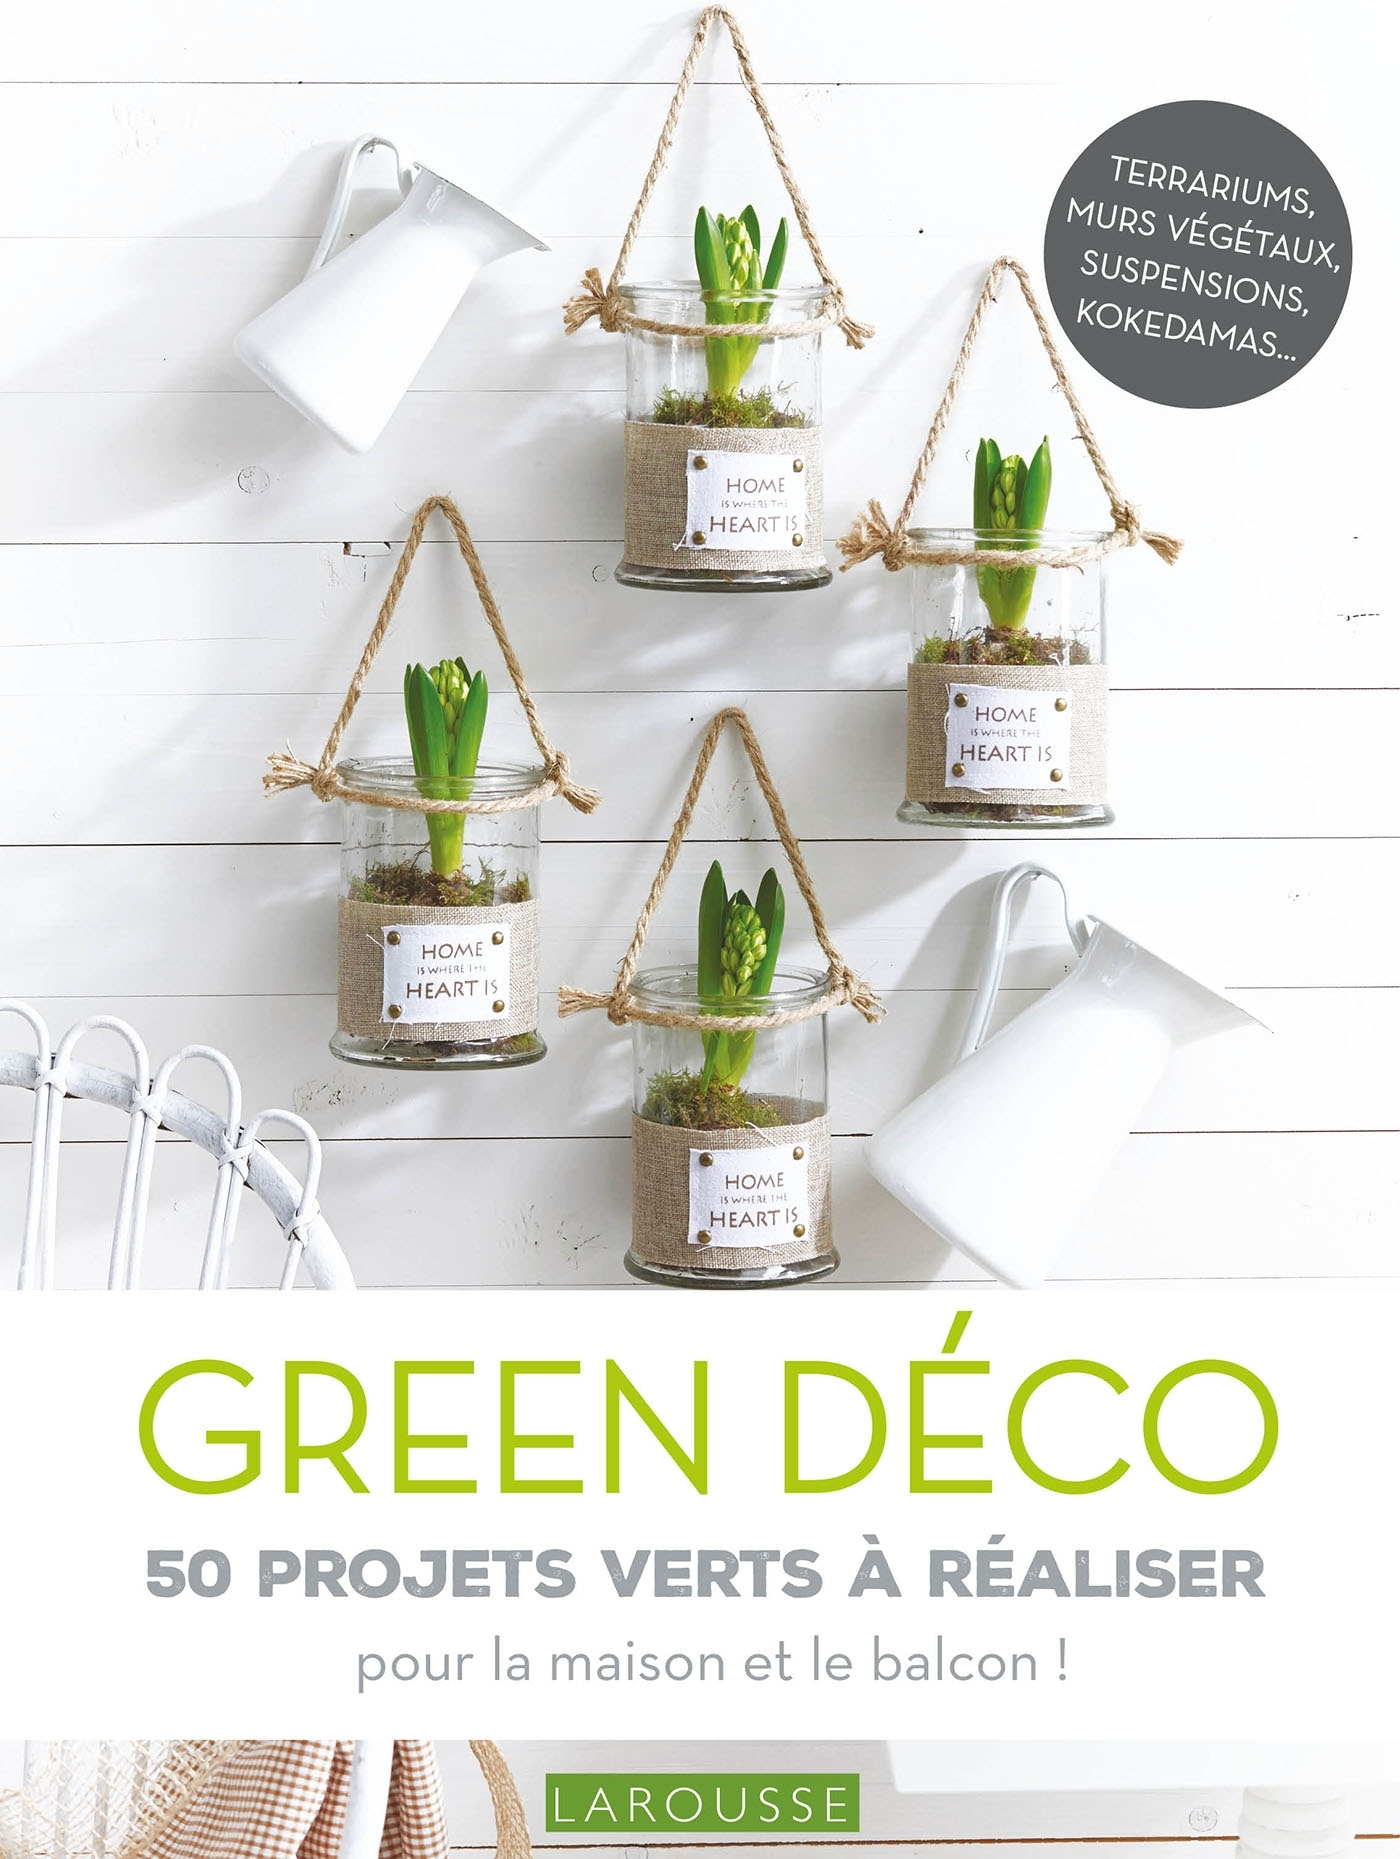 GREEN DECO 50 PROJETS VERTS A REALISER